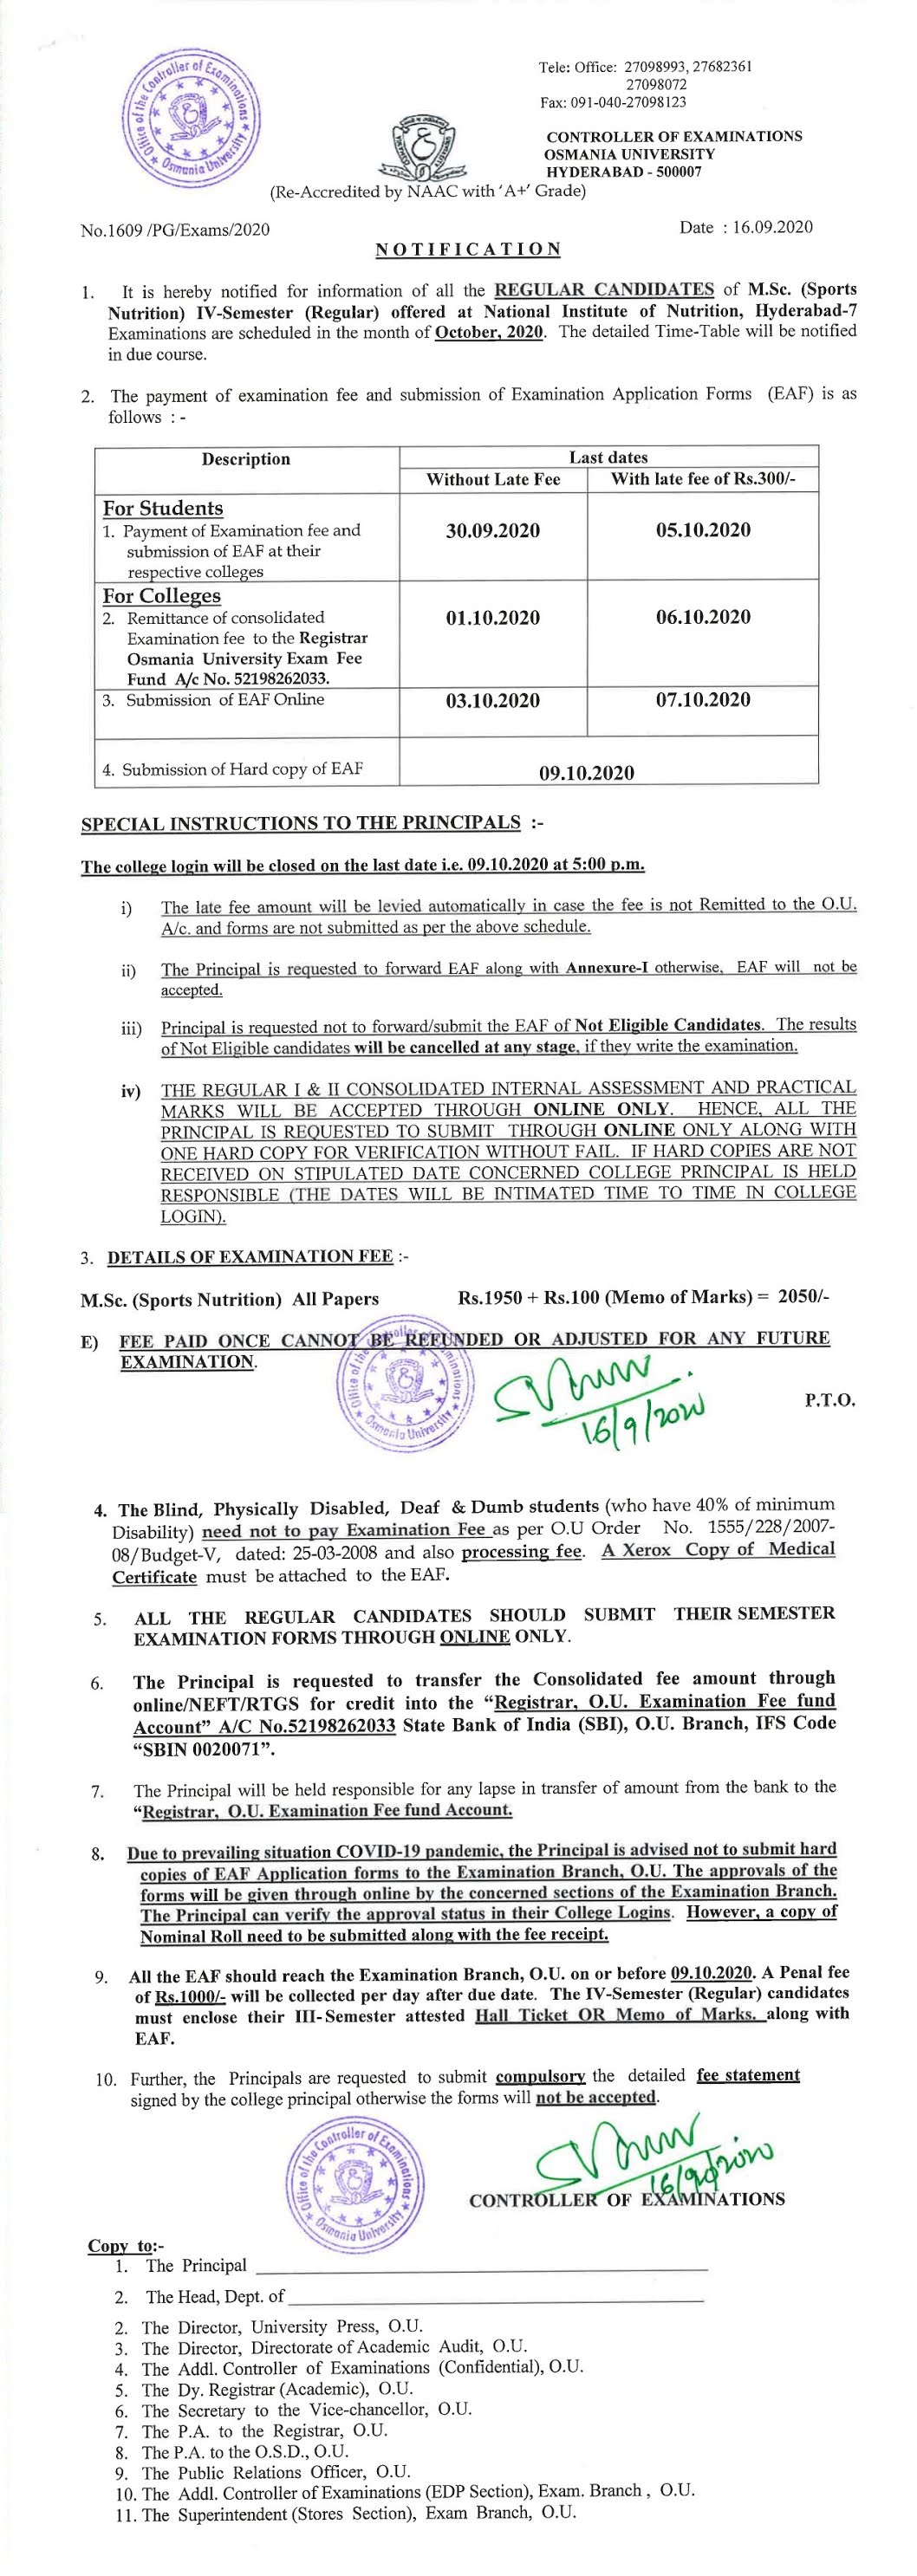 Osmania University M.Sc (Sports Nutrition) 4th Sem Oct 2020 Exam Fee Notification